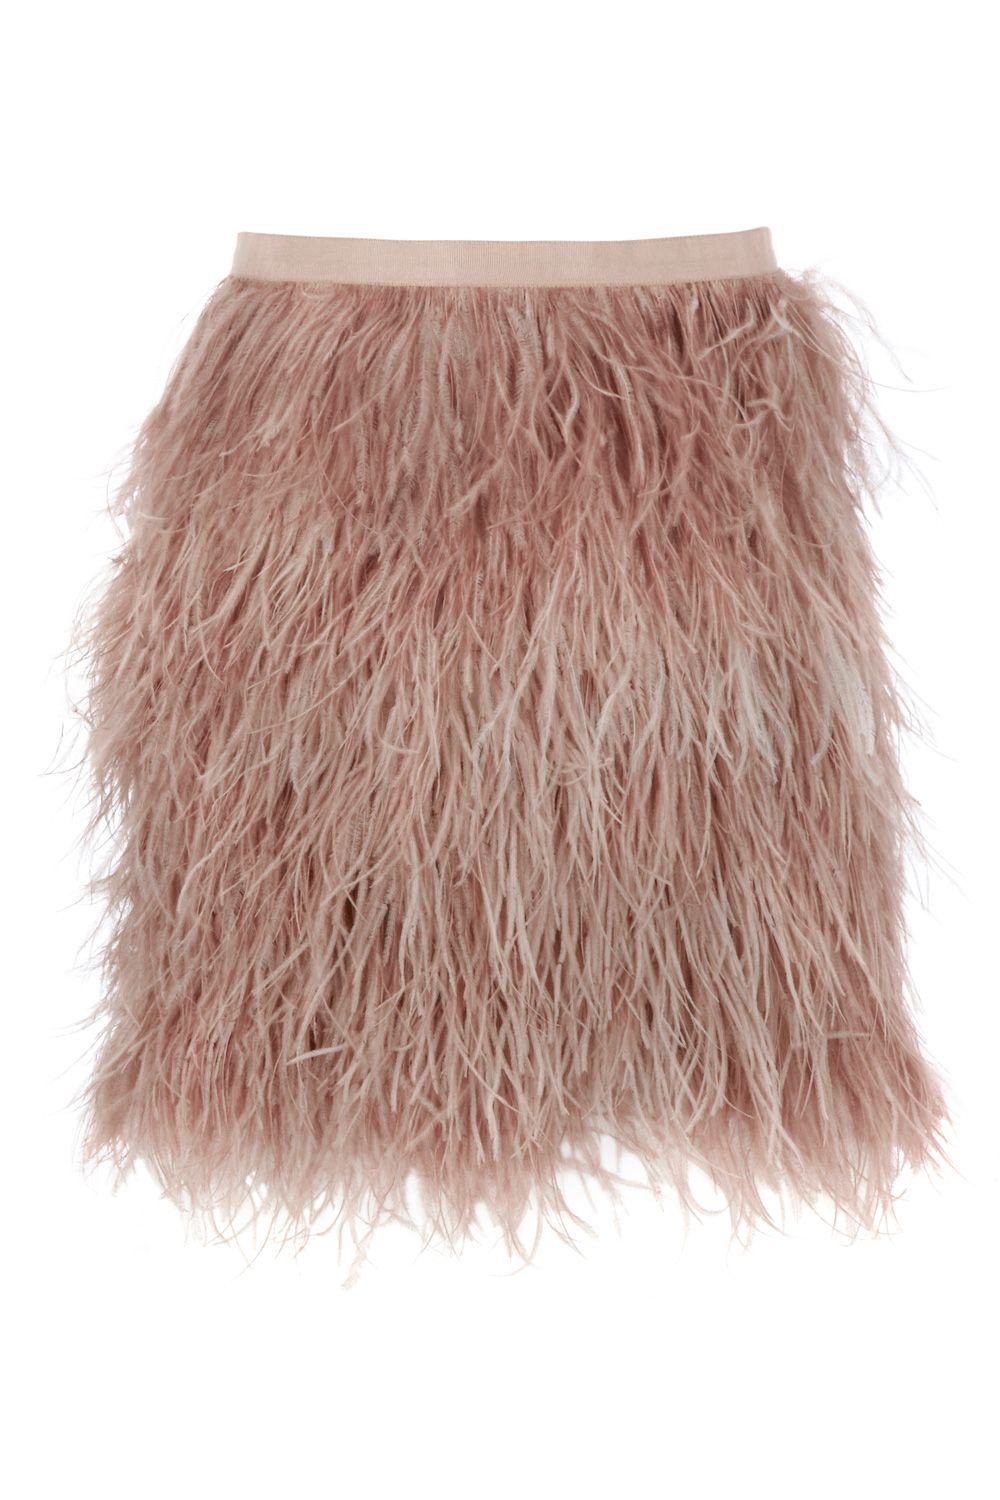 a34b522f1 Coast Stores - Skirts - FRANKIE OSTRICH FEATHER SKIRT | My Style in ...